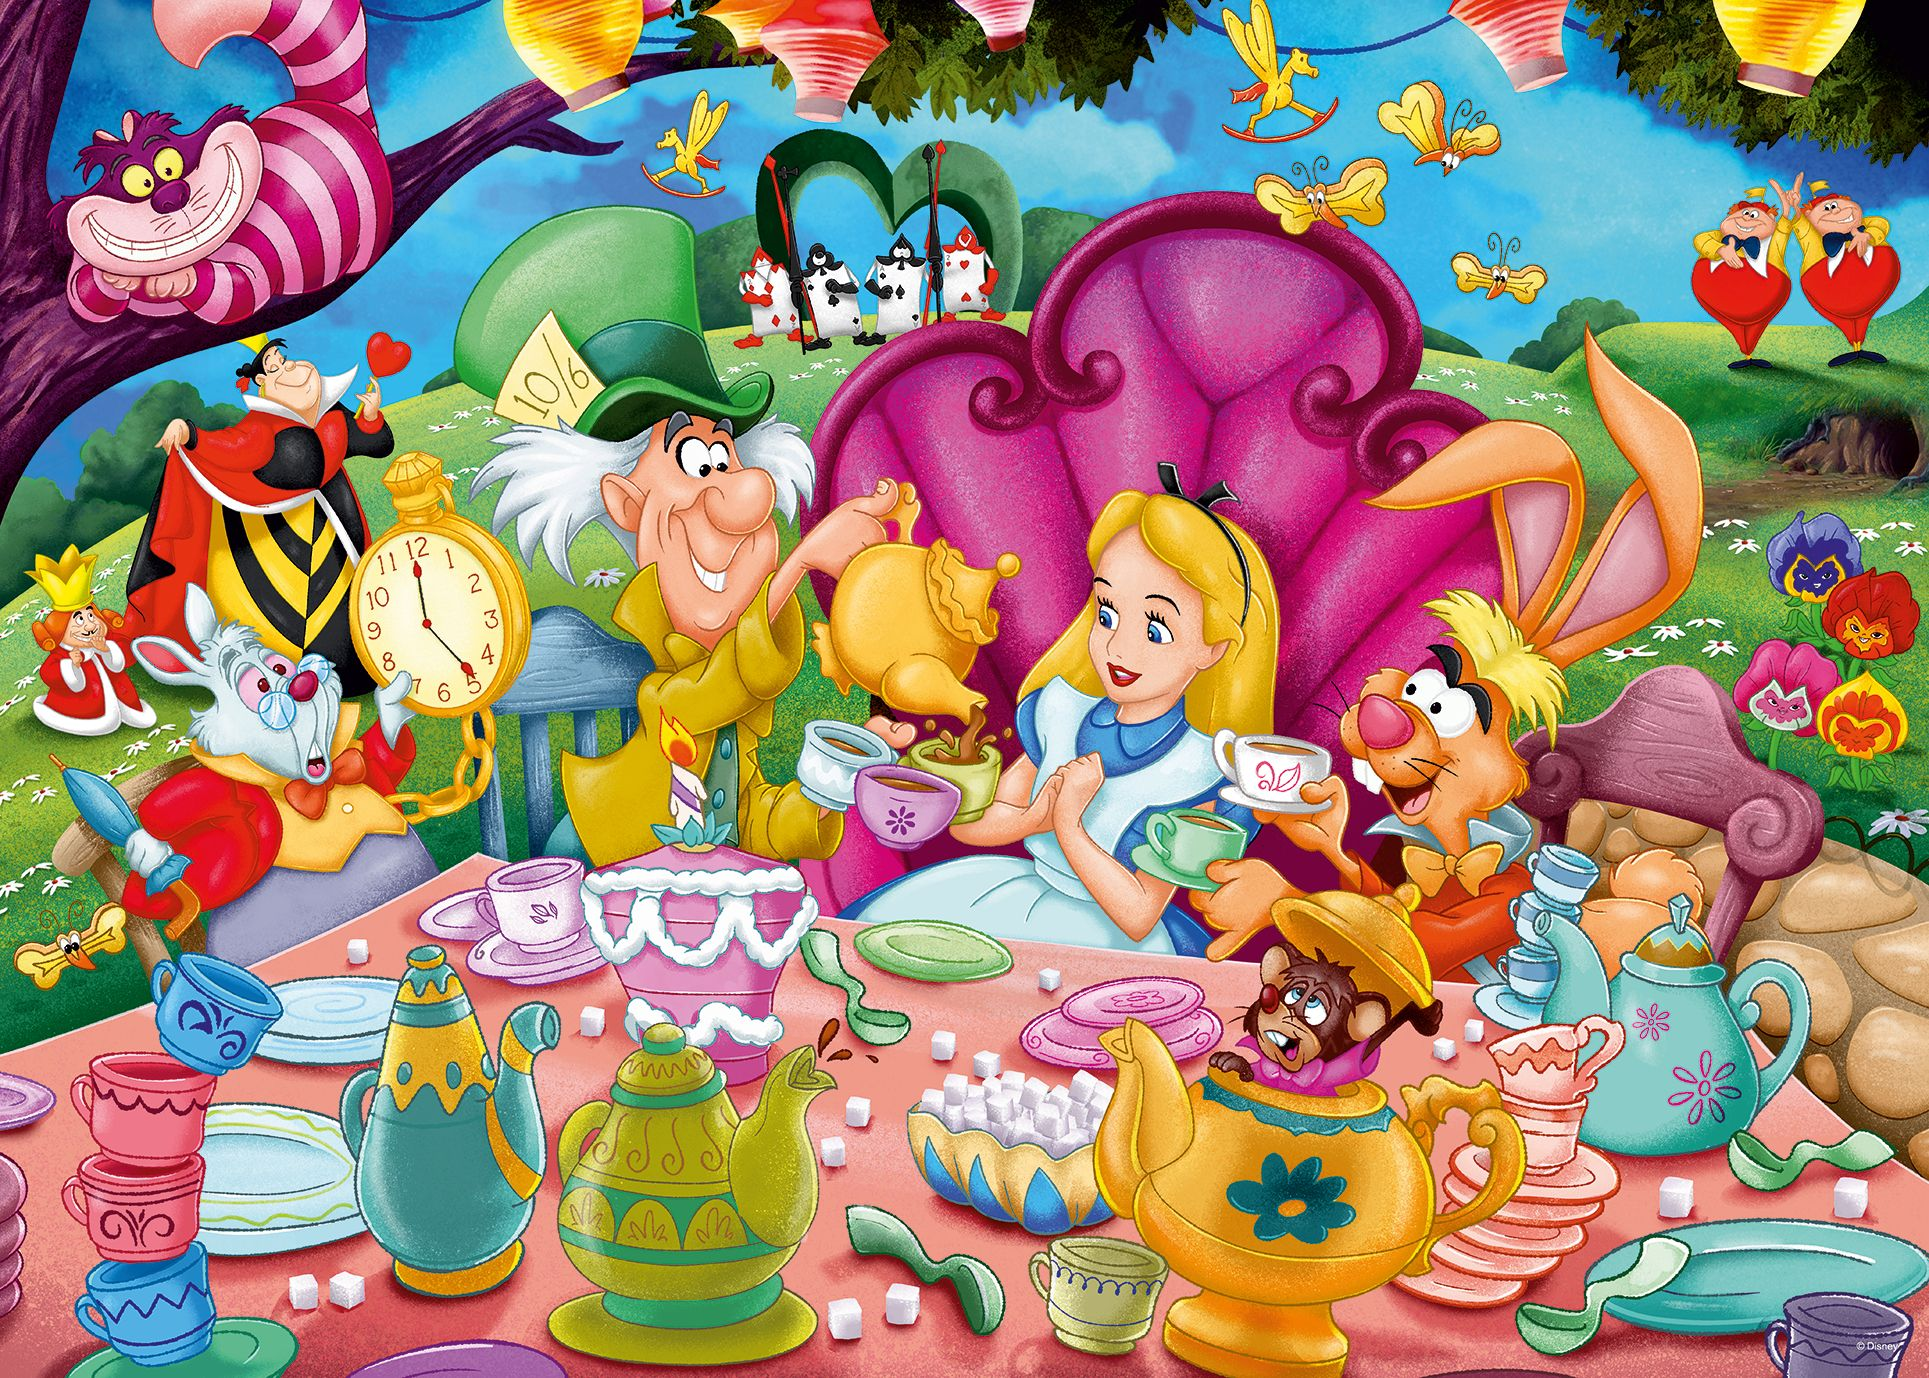 Alice in Wonderland Disney Jigsaw Puzzle